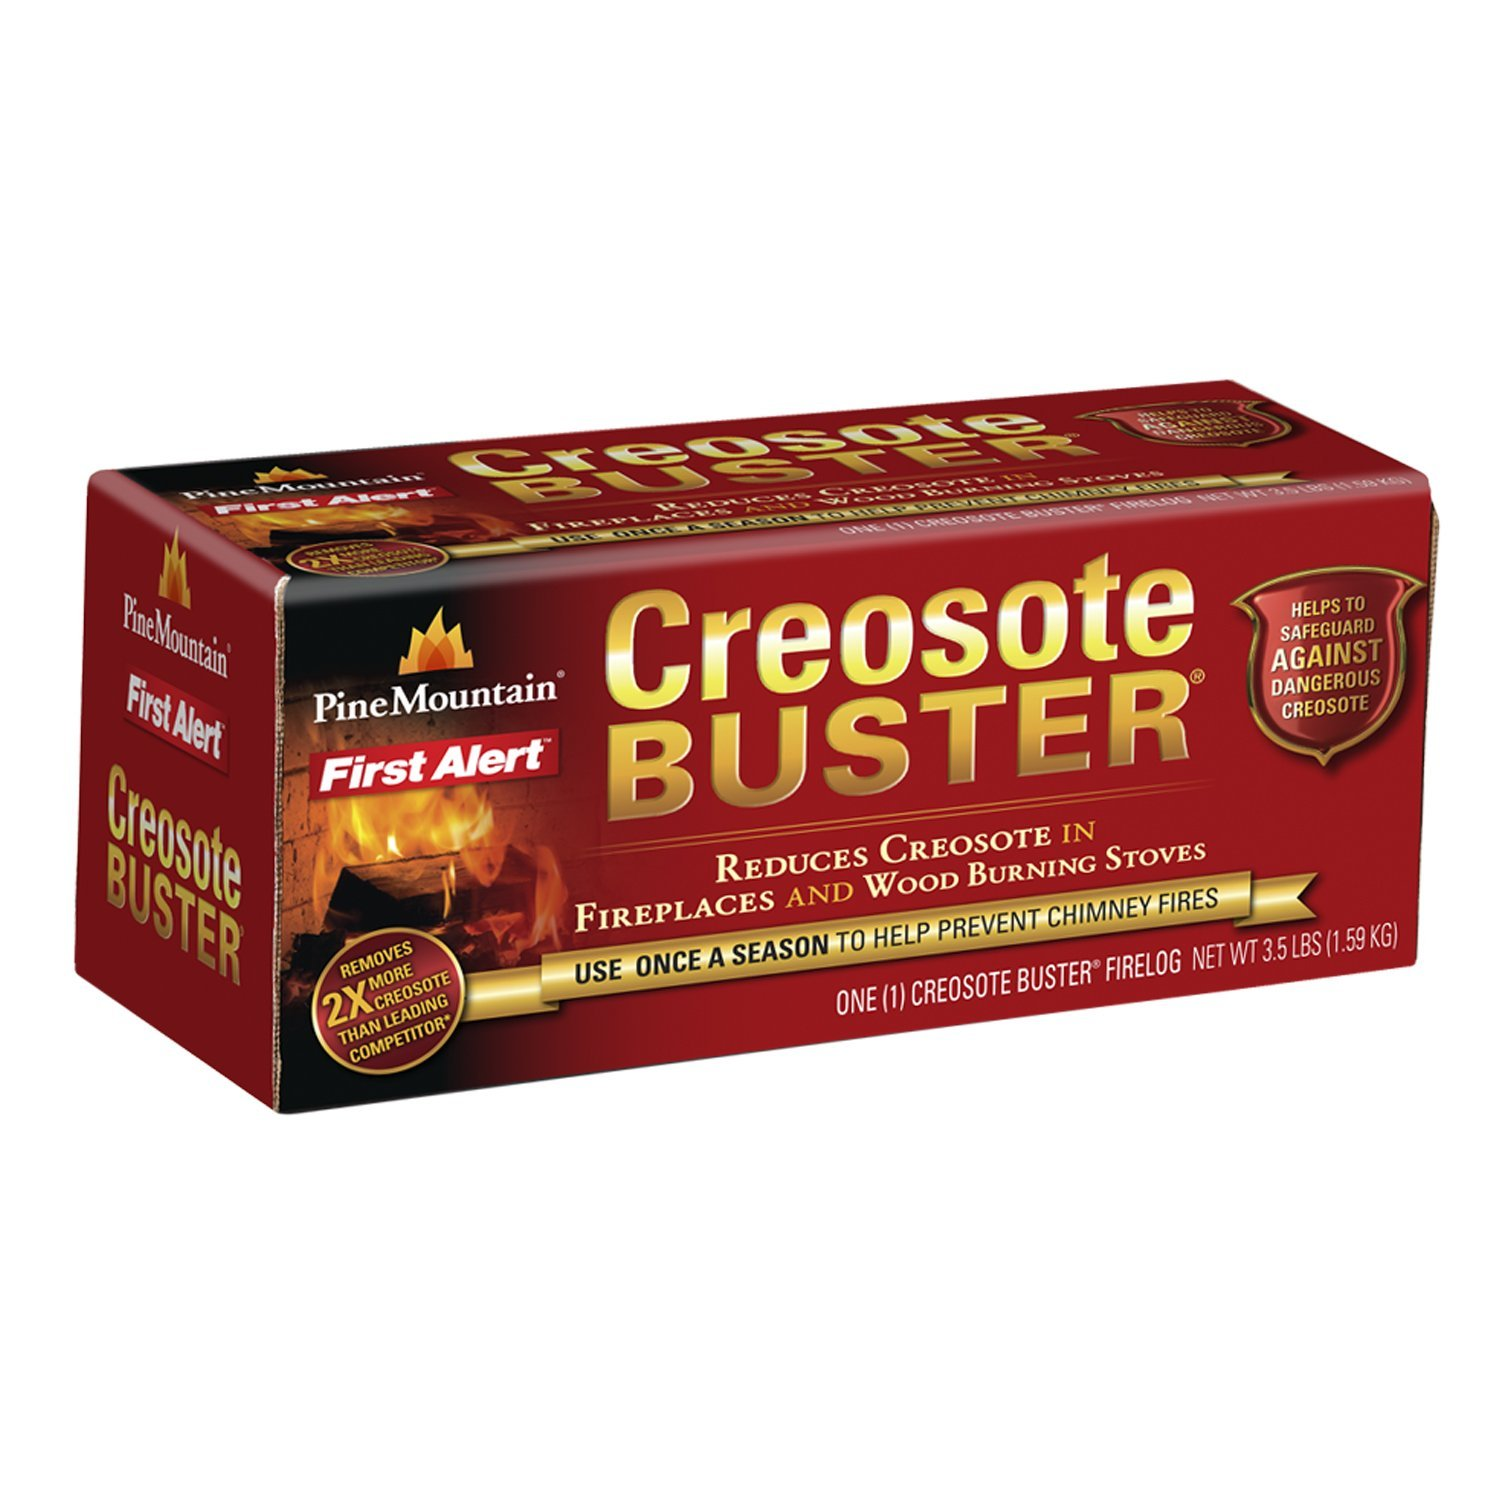 4152501500 Creosote Buster Chimney Cleaning Safety Firelog, 1 Log, Simple to use: just add to an existing fire By Pine Mountain